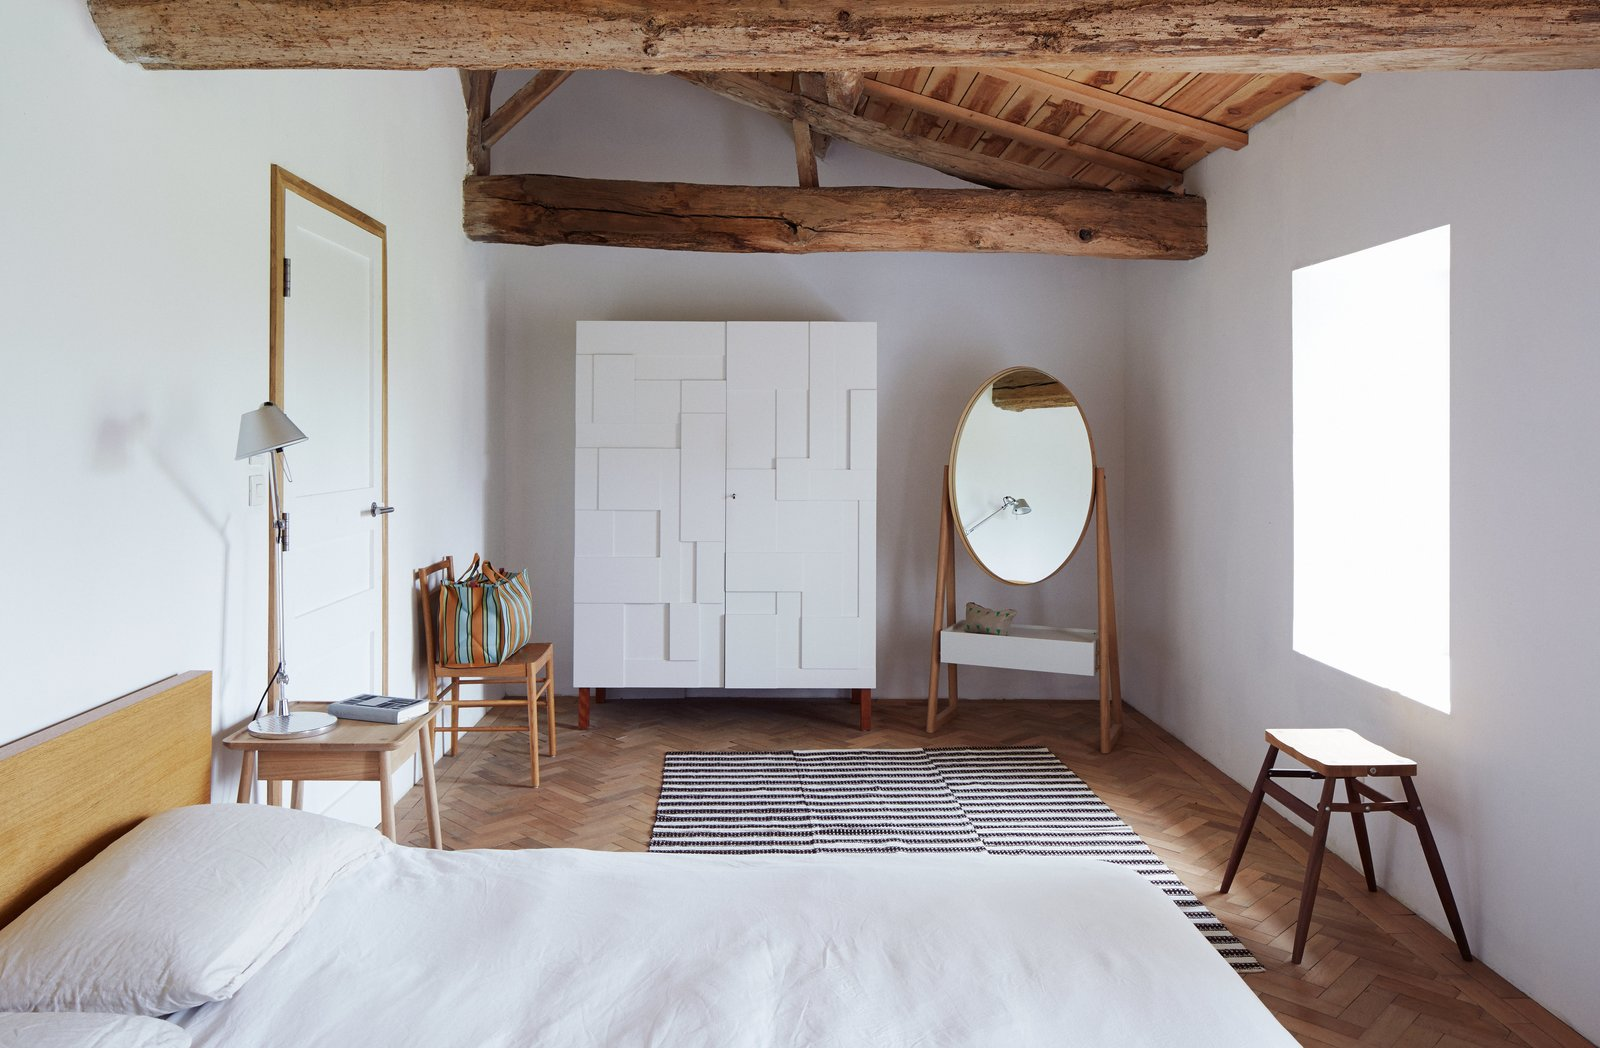 Pinch-Bannon Residence bedroom with chevron wood floors and exposed beam ceilings.